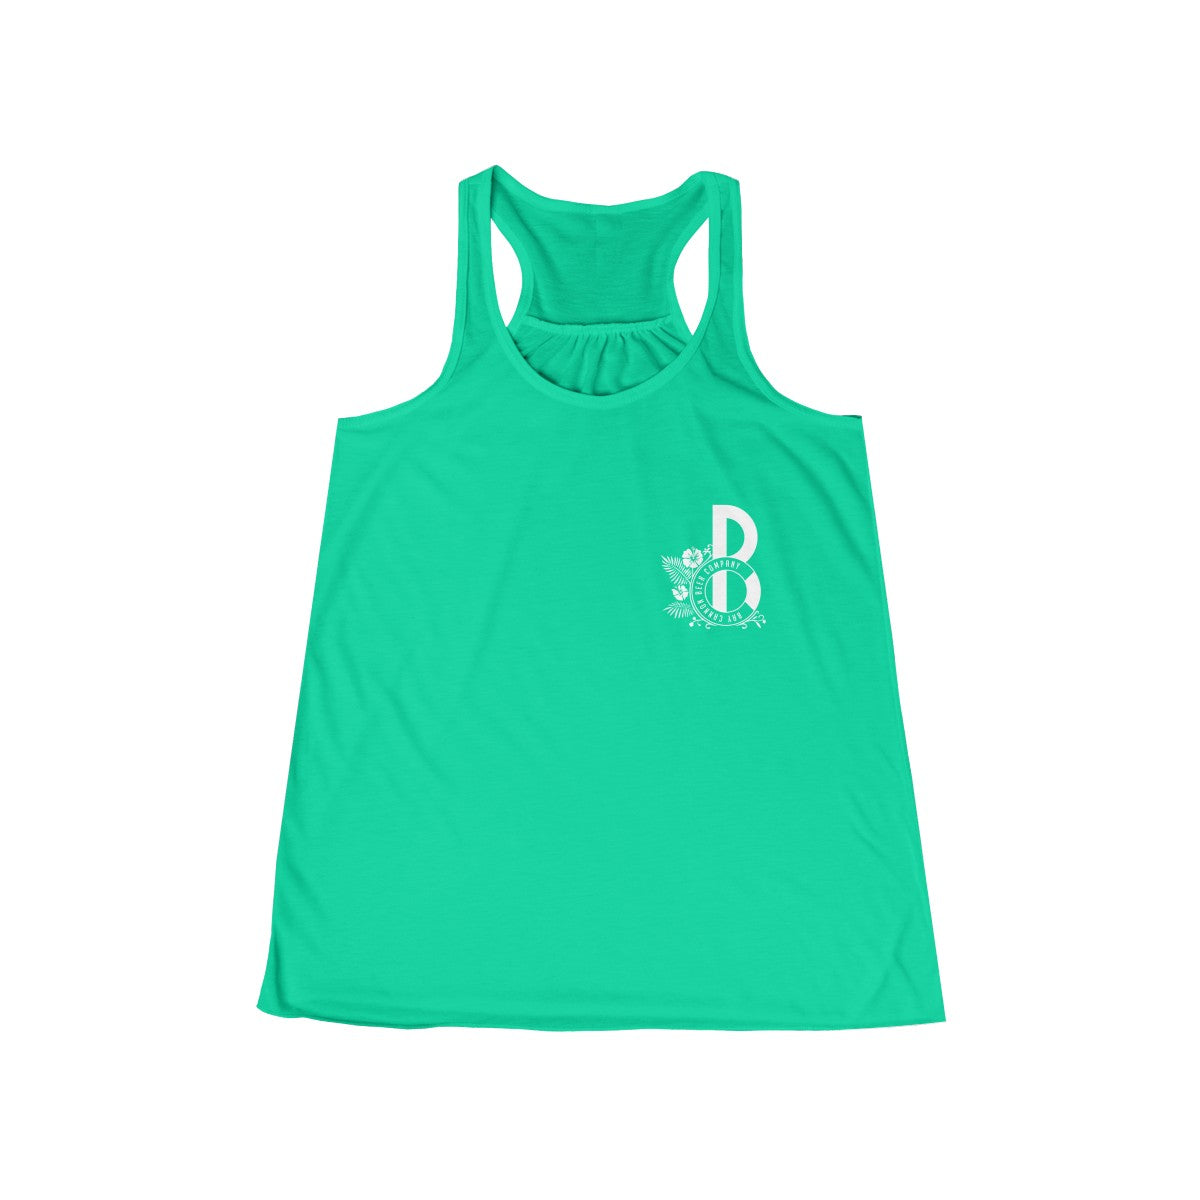 Bay Cannon Beer Company - Teal Flowy Bella + Canvas Tank